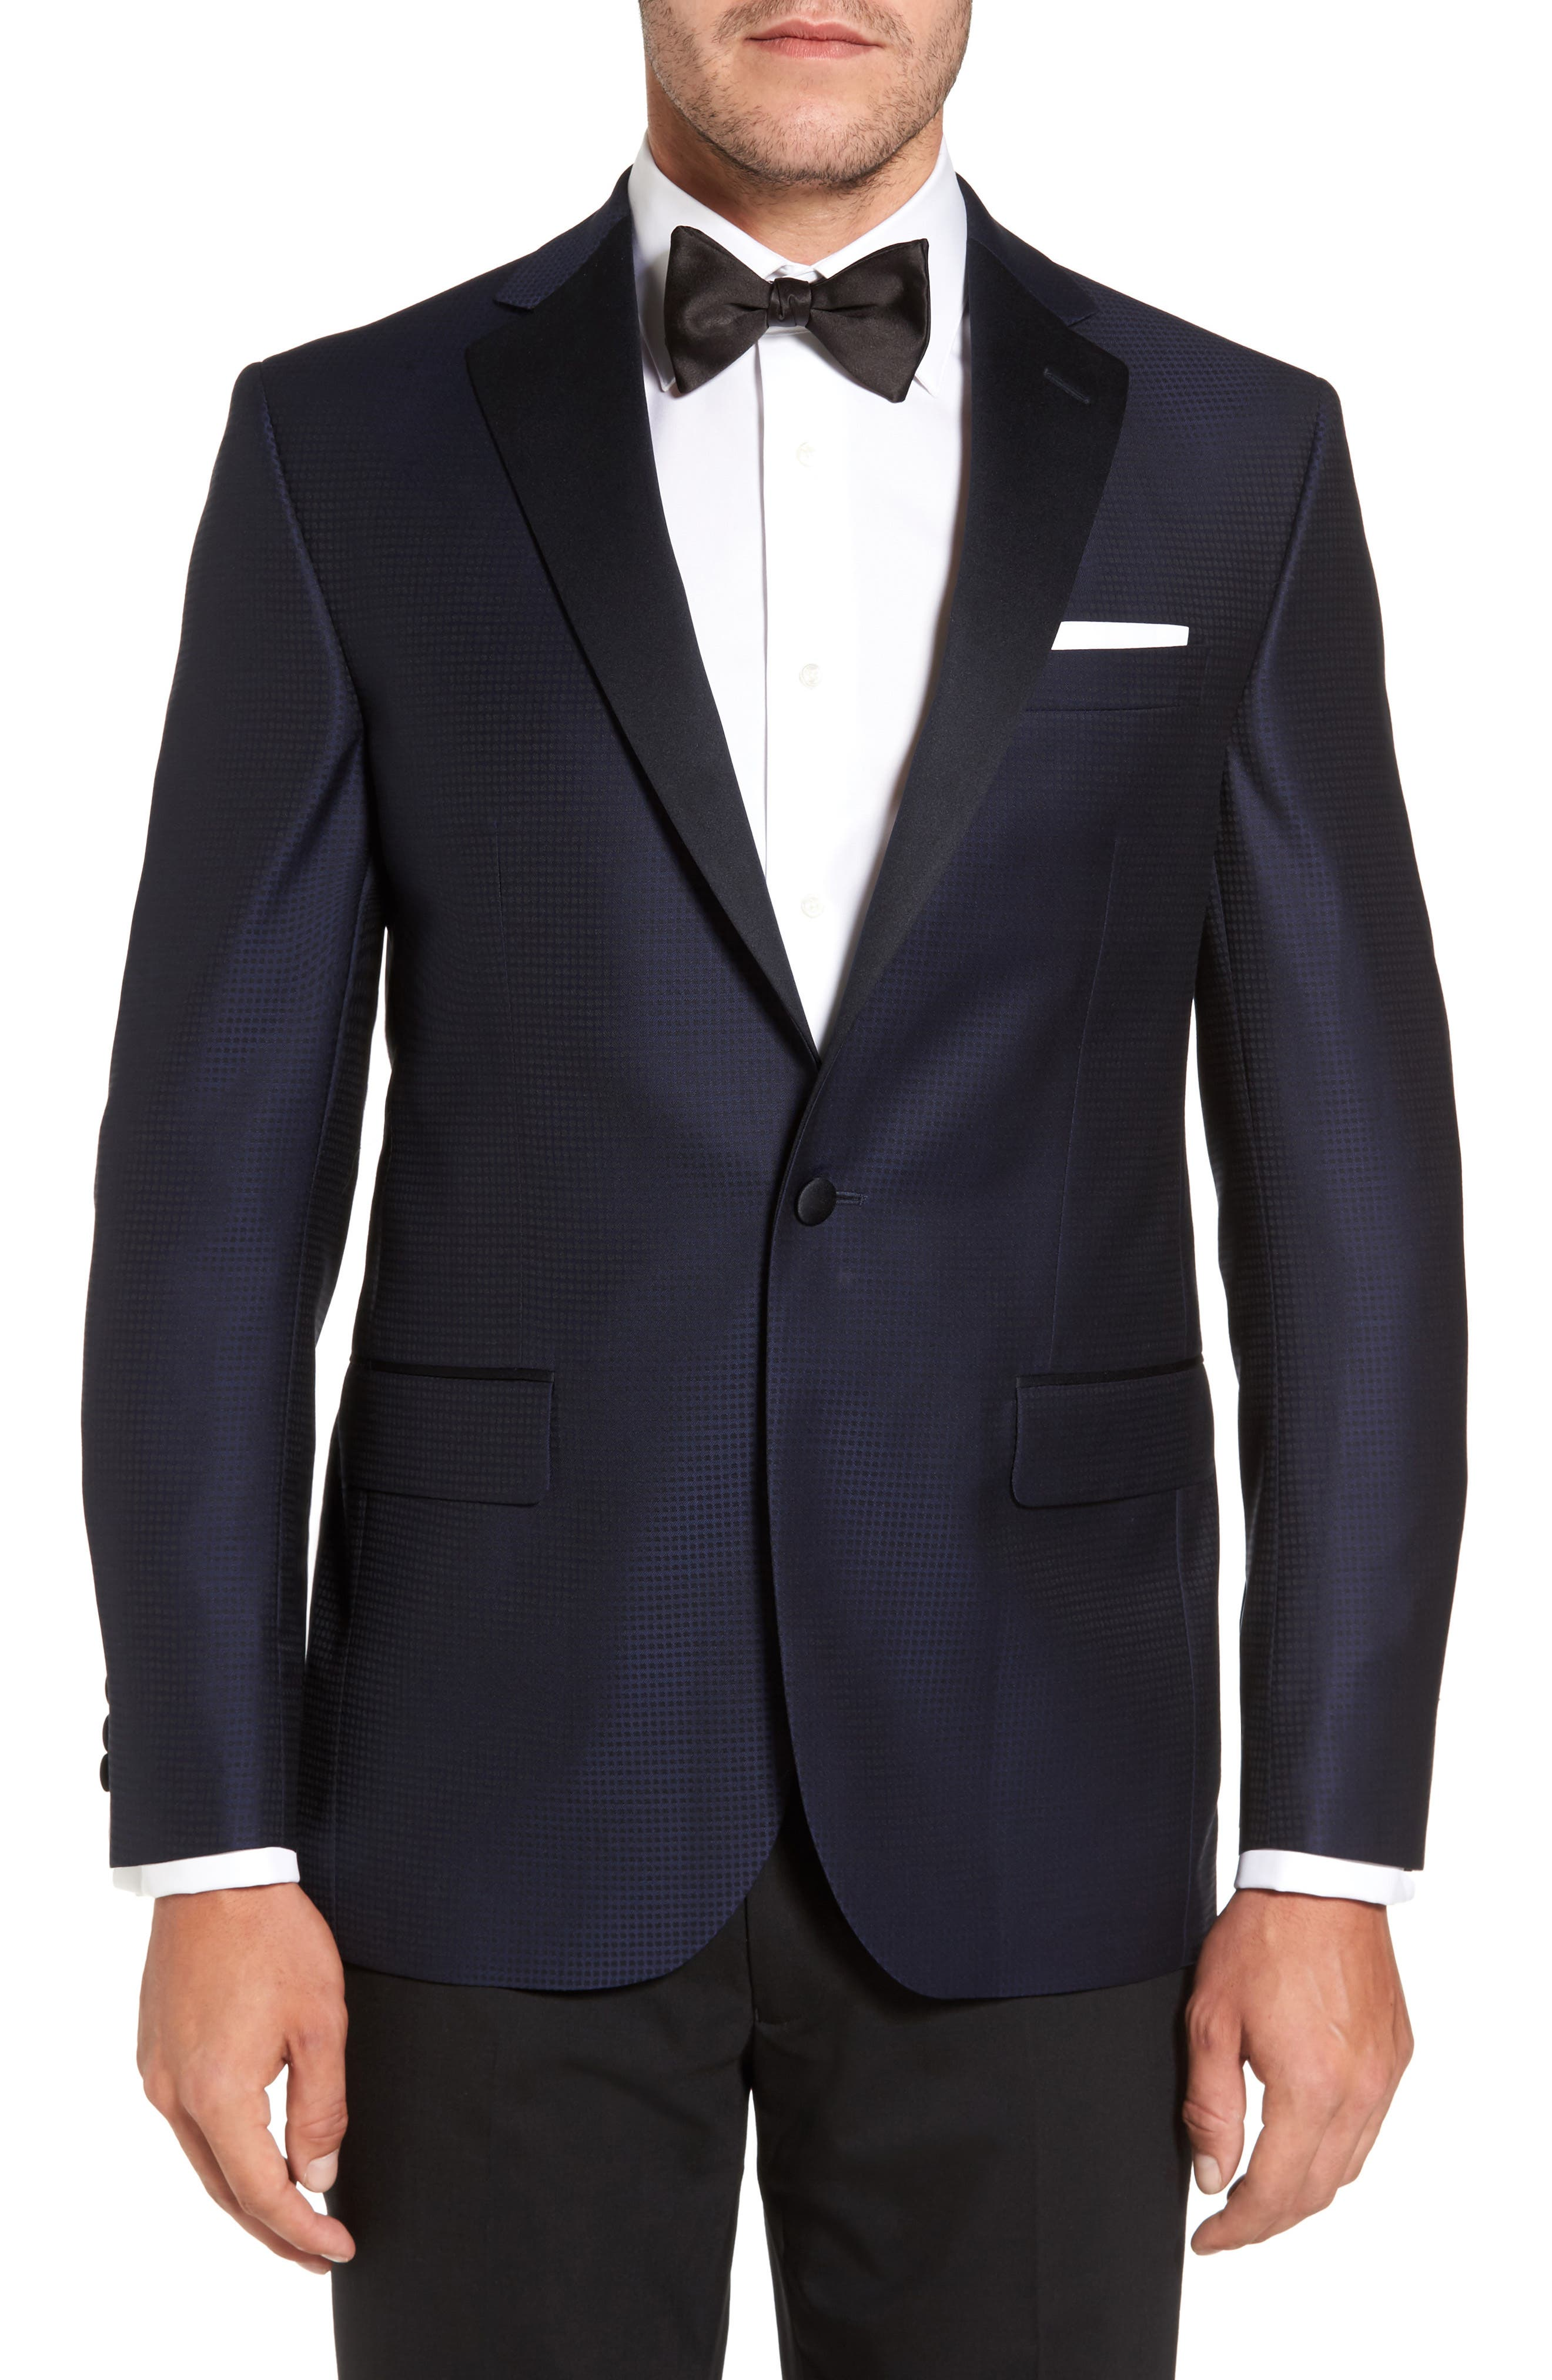 Reed Classic Fit Dinner Jacket,                         Main,                         color, Navy